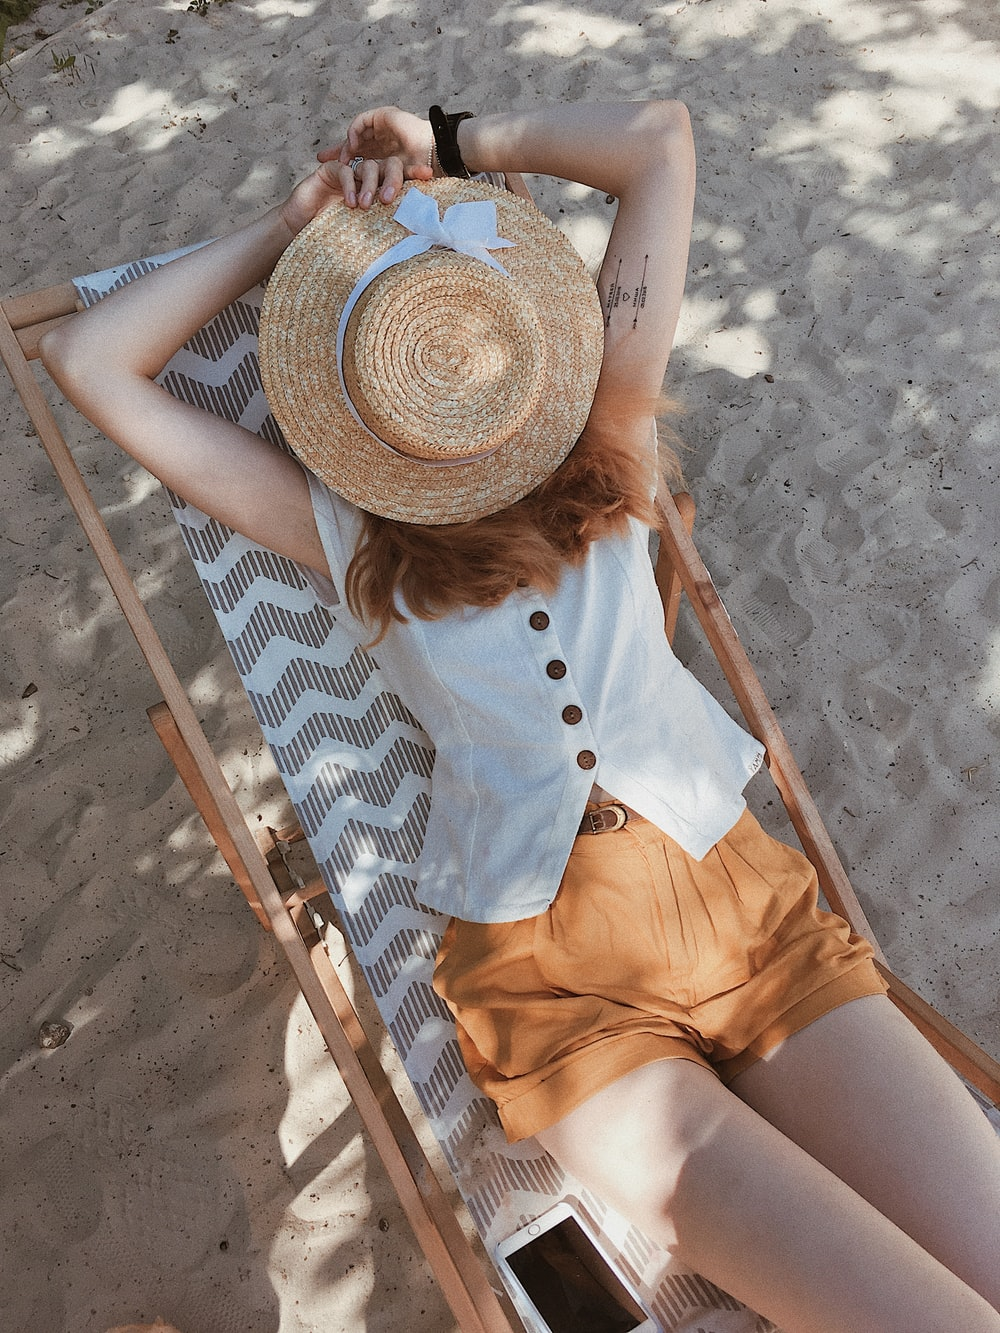 woman in white top lying on chair